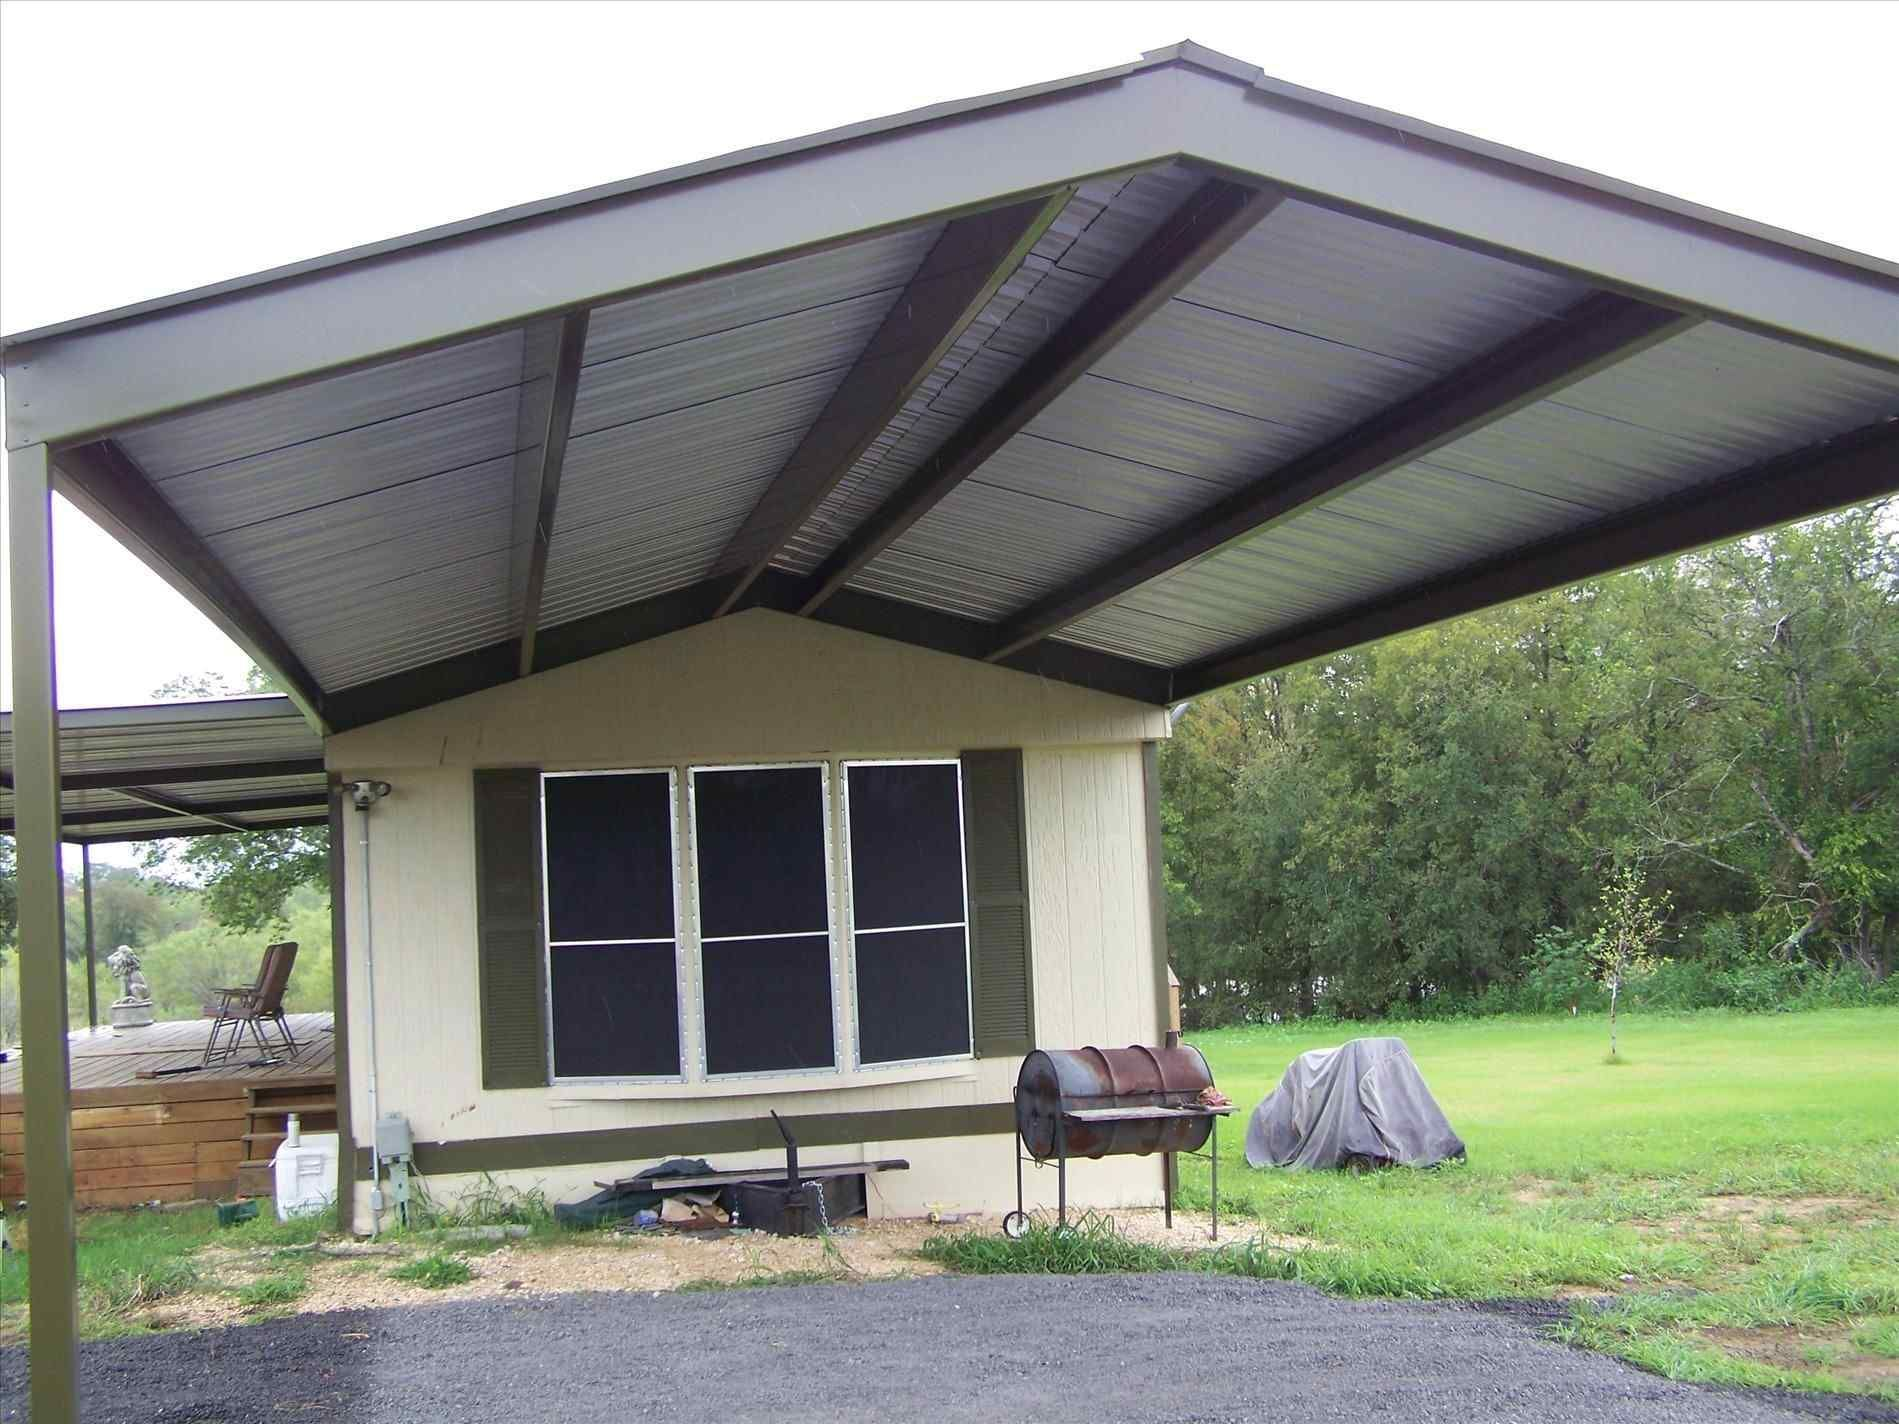 full size of awningcarport home awning ideas for mobile